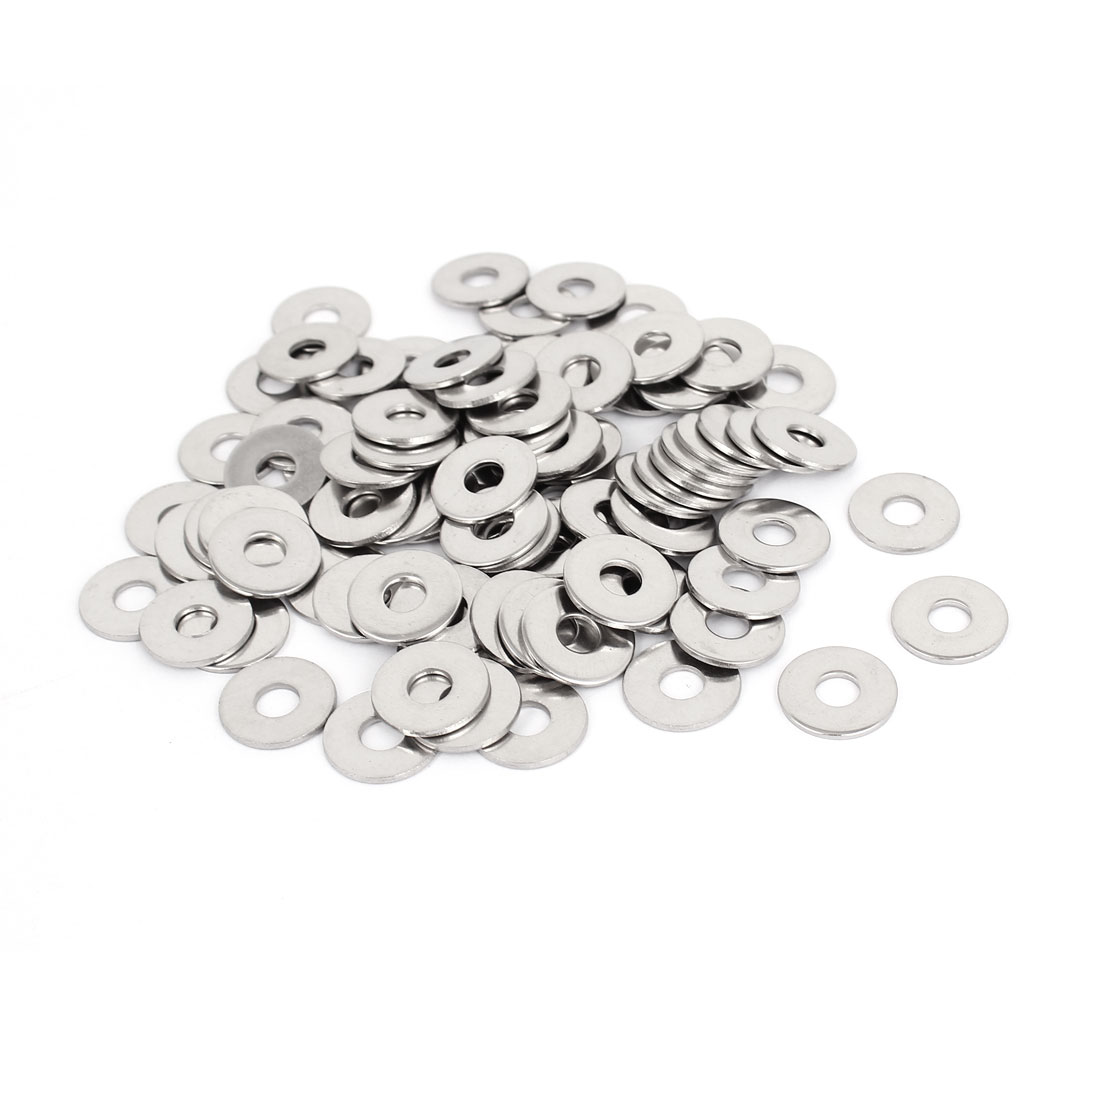 100Pcs M6x18mmx1.5mm Stainless Steel Metric Round Flat Washer for Bolt Screw